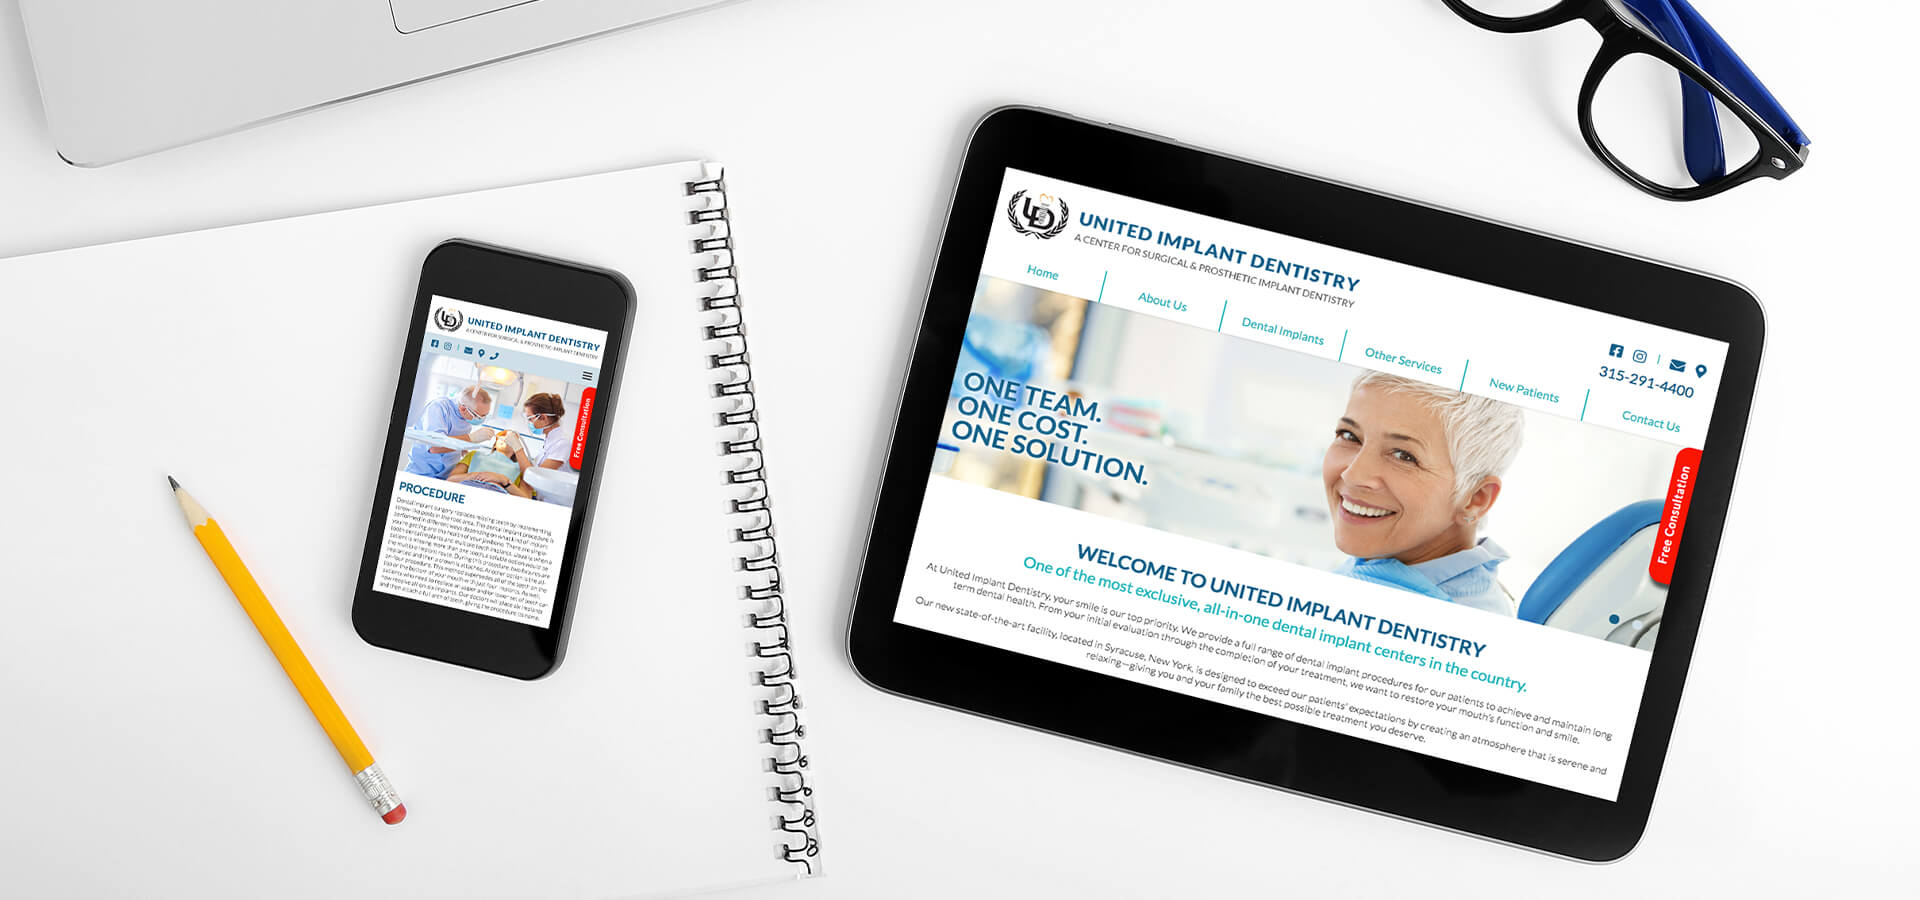 United Implant Dentistry website on tablet and mobile